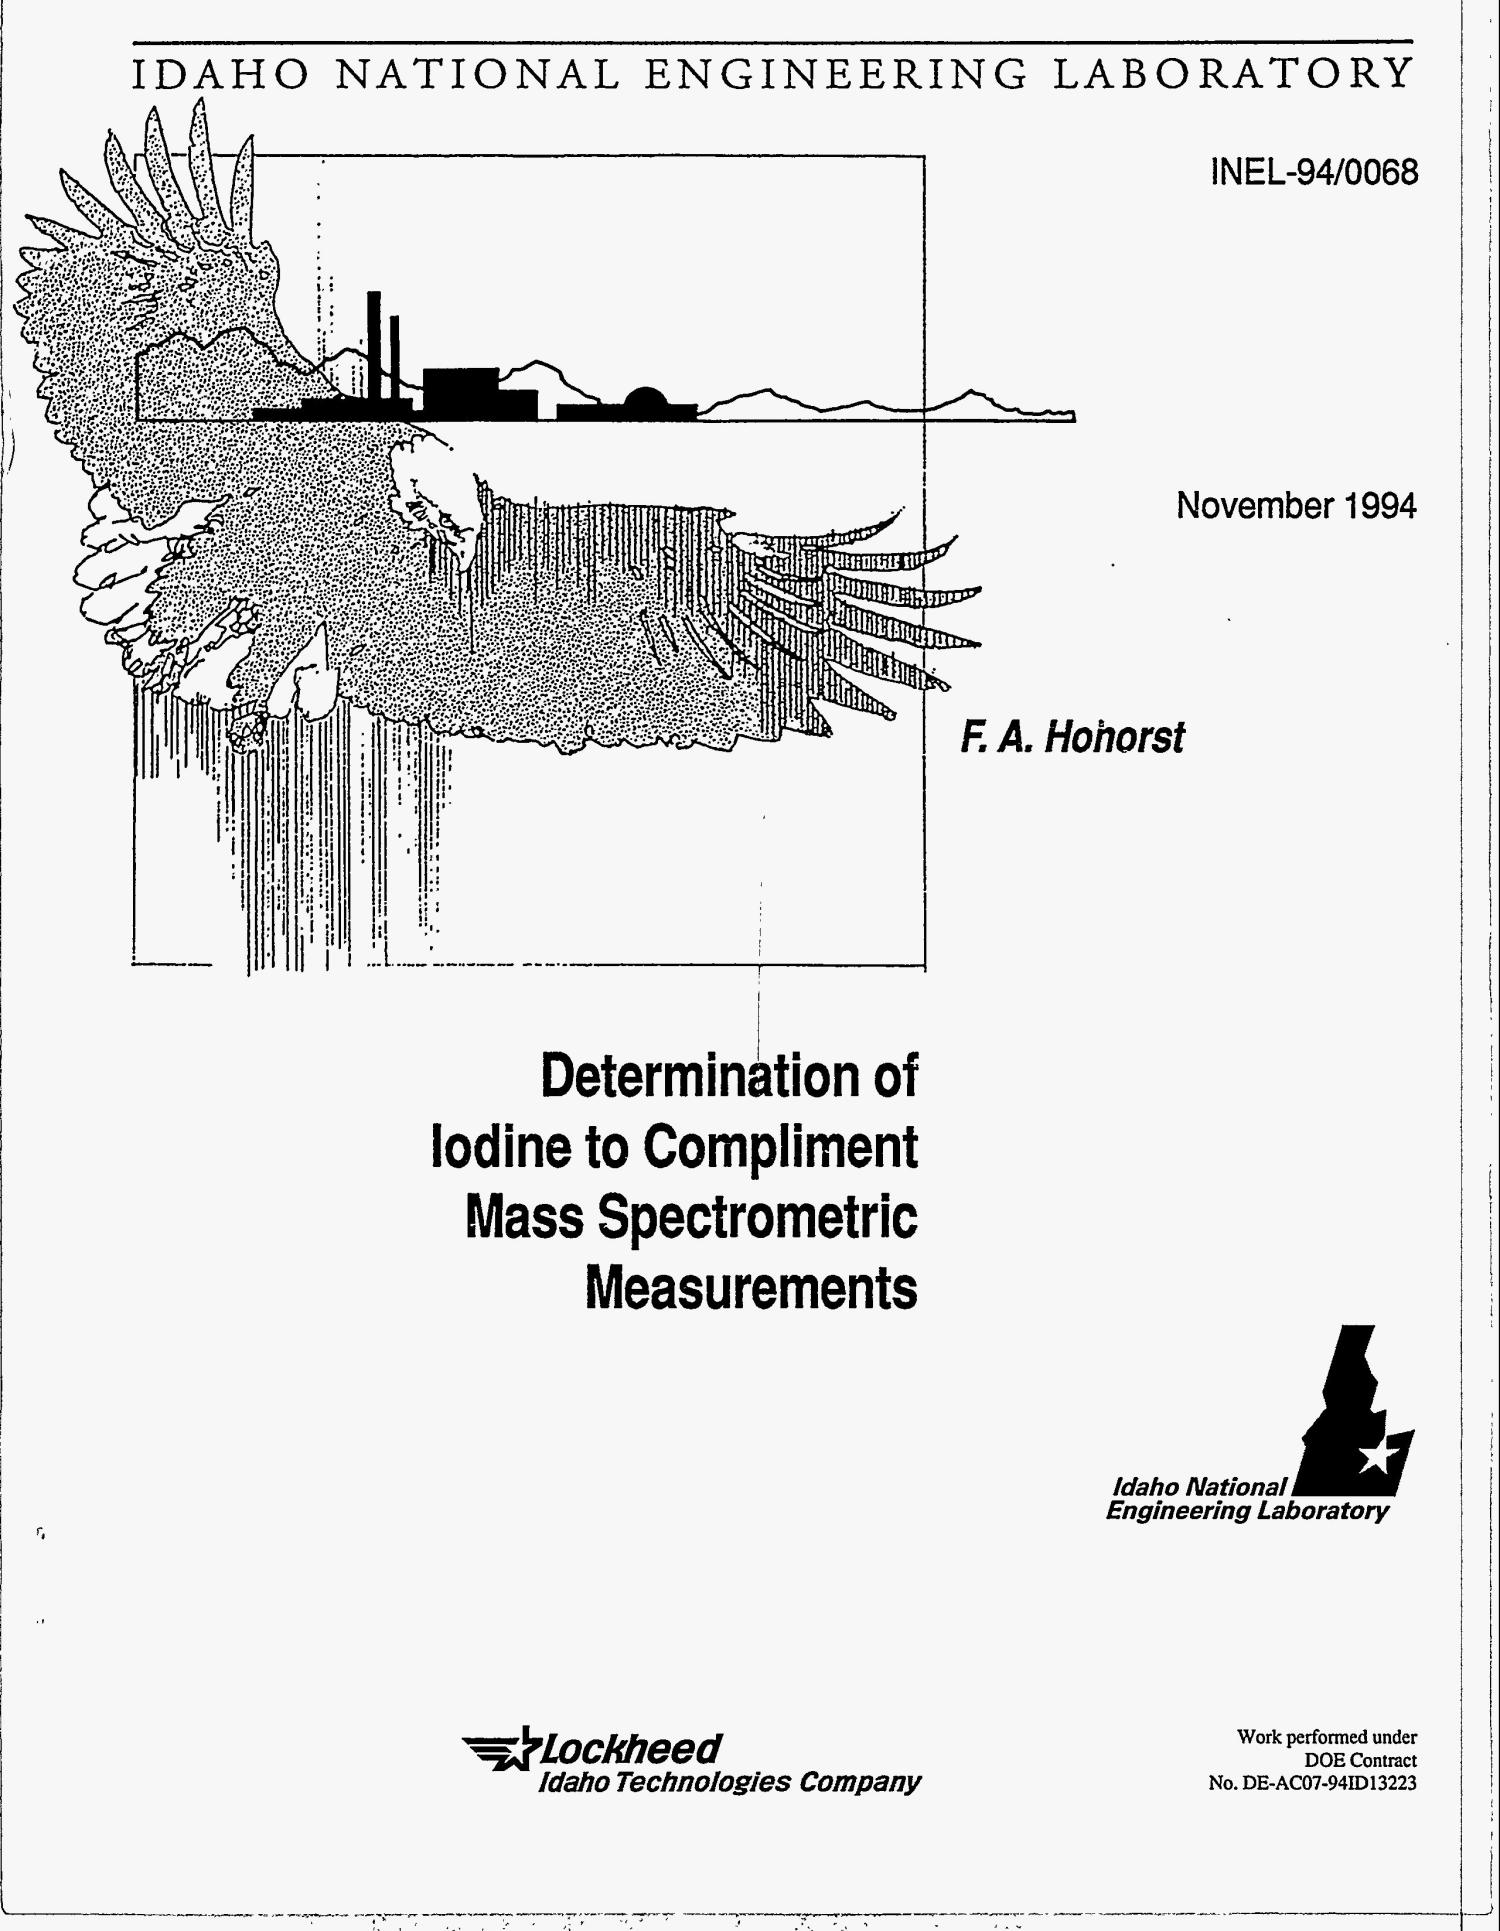 Determination of iodine to compliment mass spectrometric measurements                                                                                                      [Sequence #]: 1 of 12